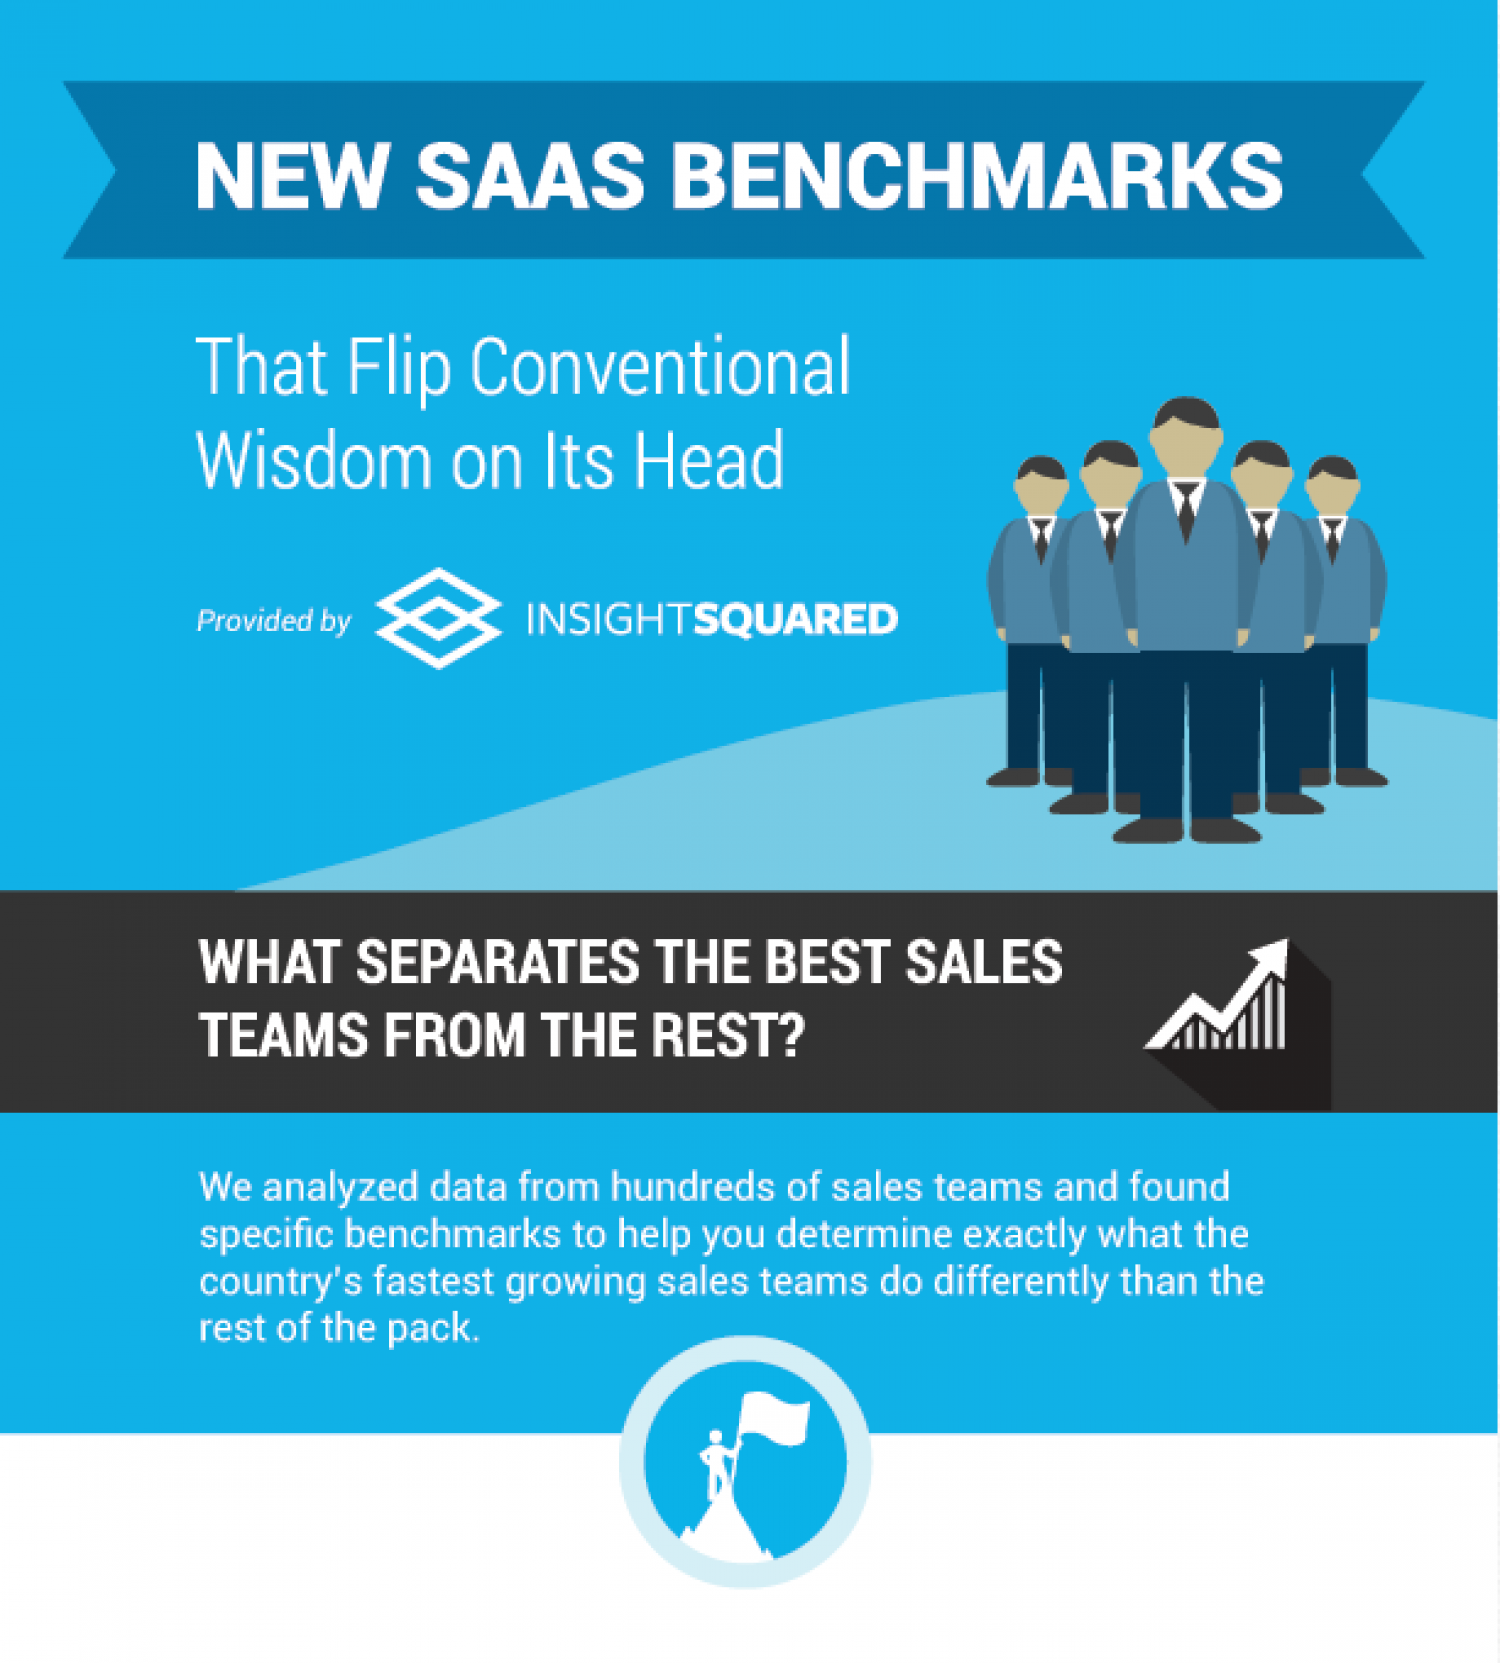 New SaaS Benchmarks That Flip Conventional Wisdom on Its Head Infographic